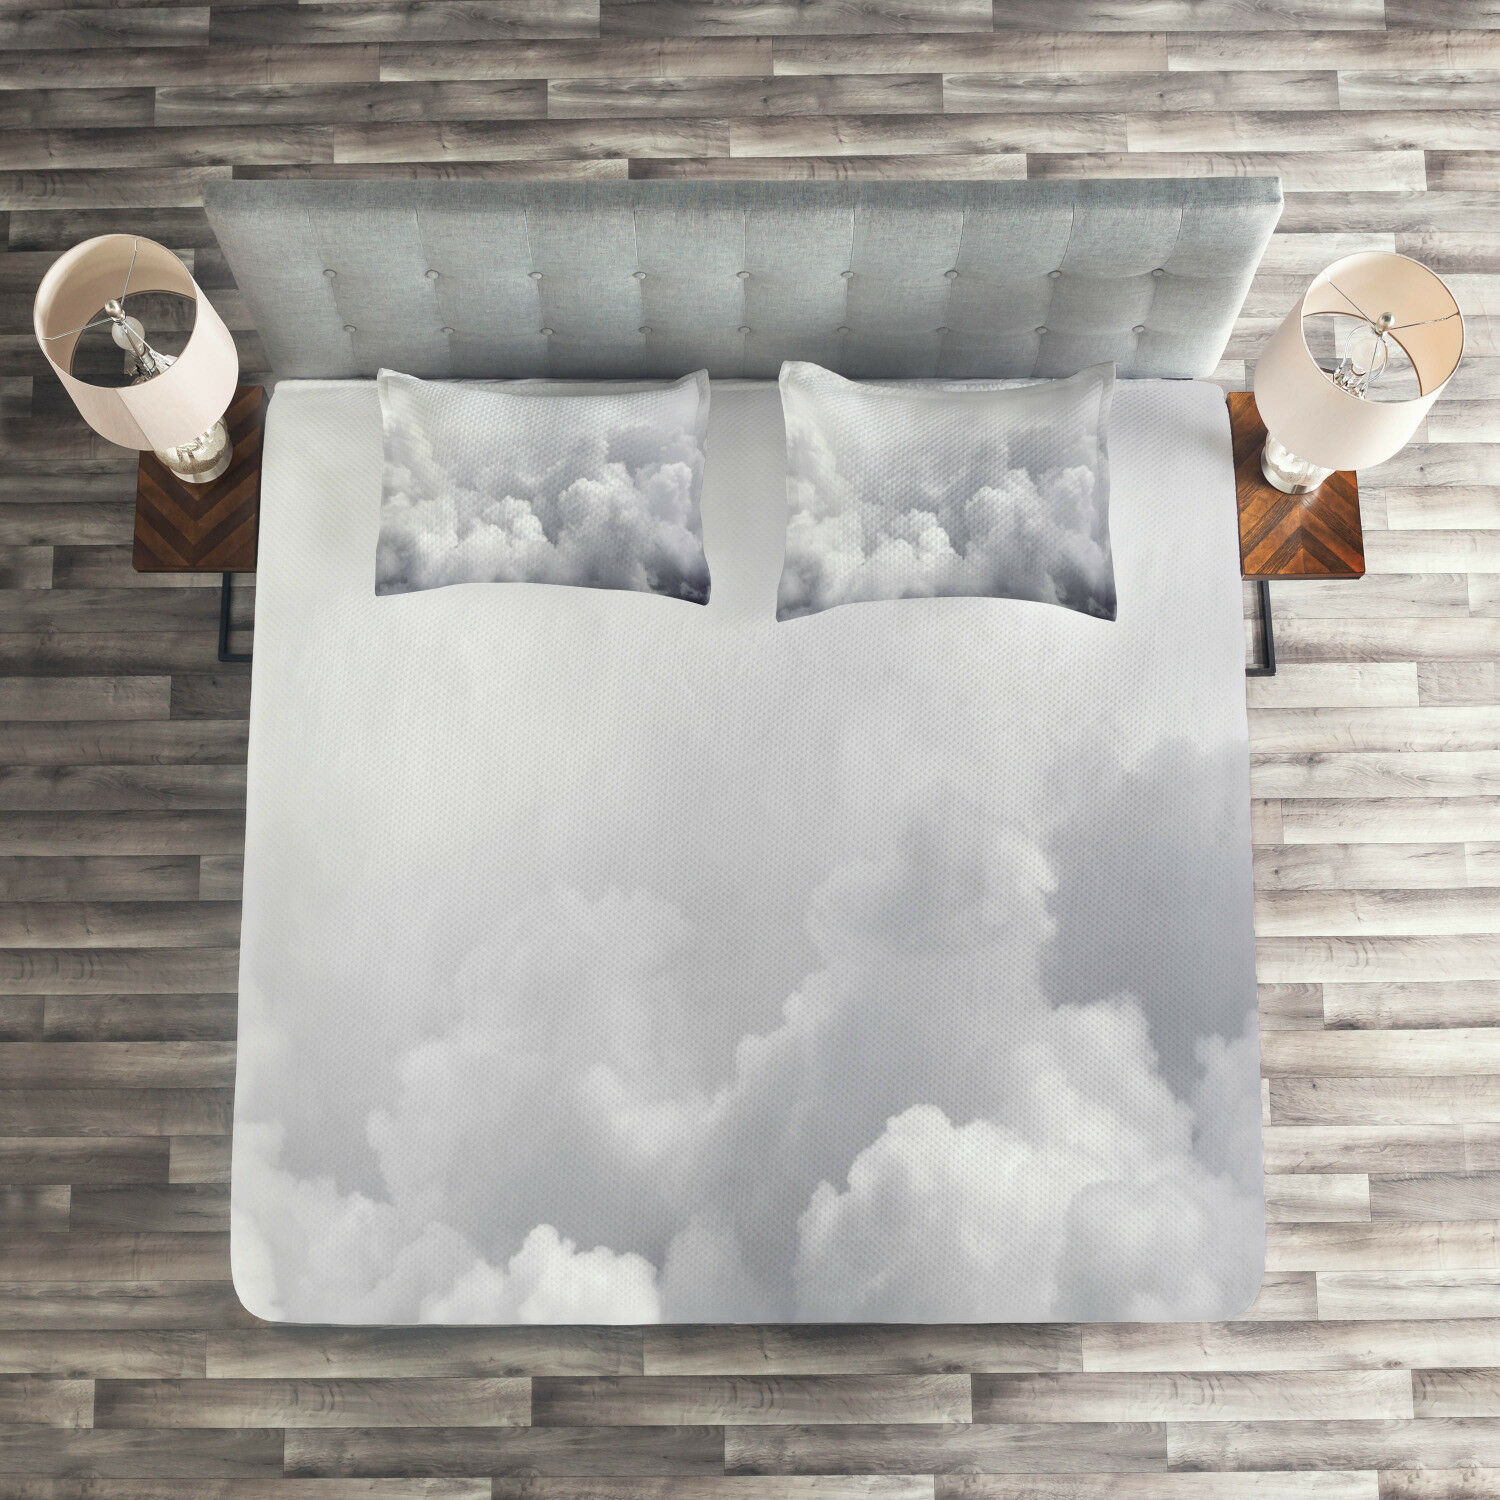 Grey Quilted Coverlet & Pillow Shams Set, Dark Clouds Moody Sky Print